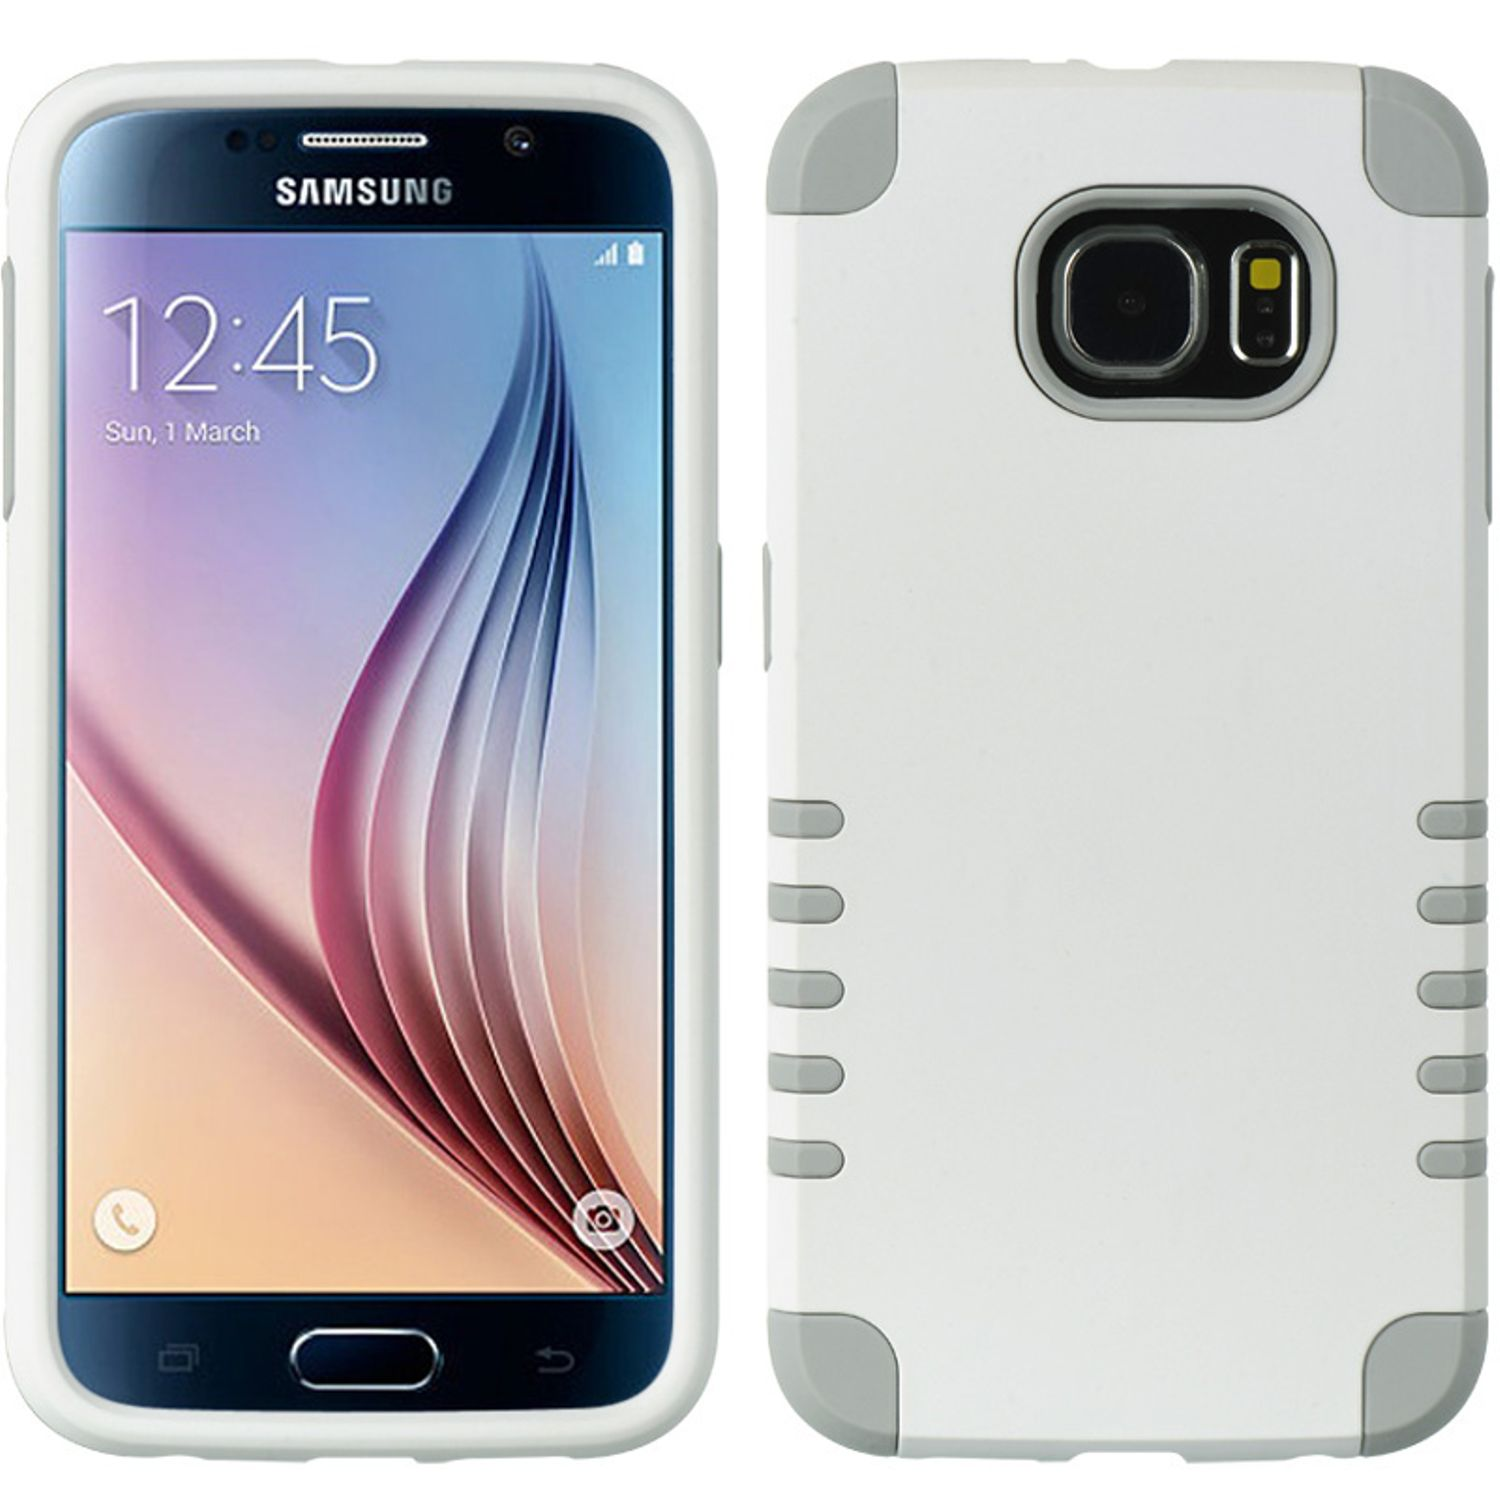 Samsung Galaxy S6 Case, by Insten Dual Layer [Shock Absorbing] Hybrid Rubber Coated Hard Plastic/Soft Silicone Case Cover For Samsung Galaxy S6 SM-G920, White/Gray